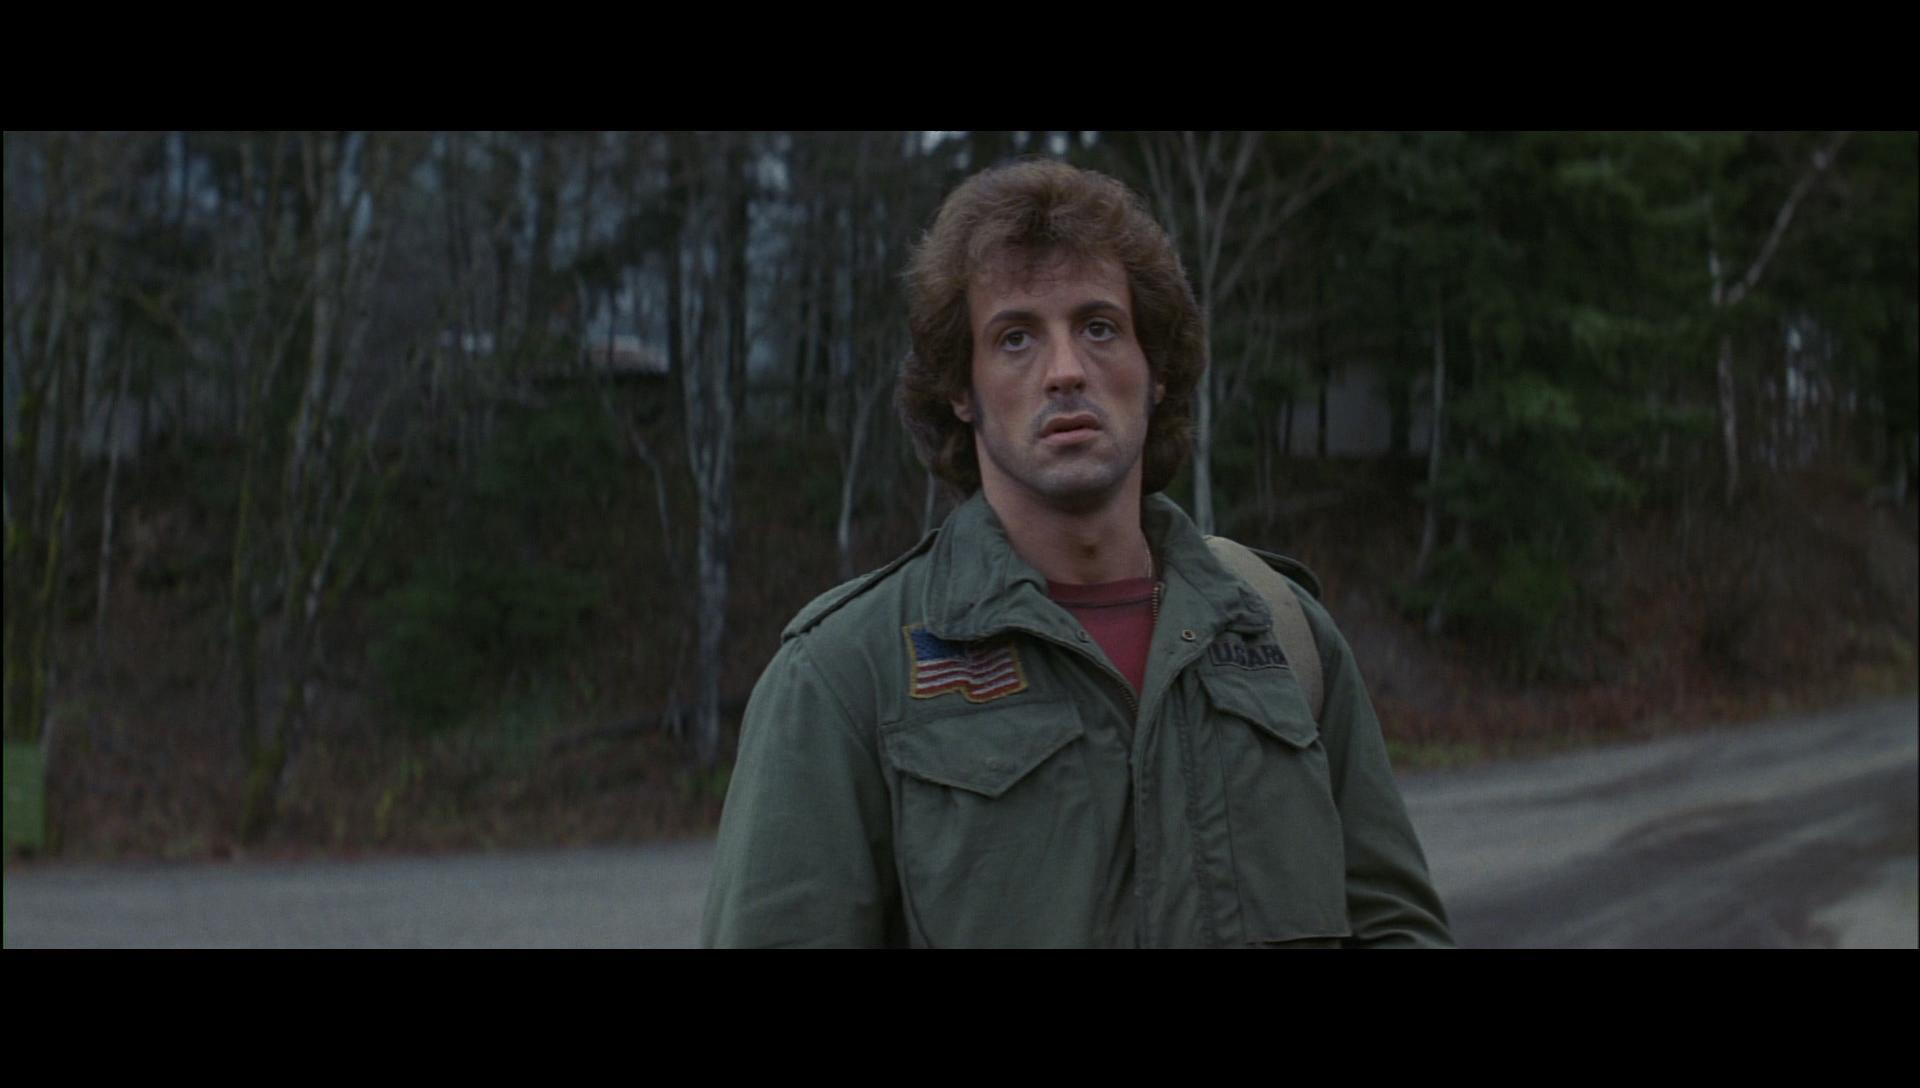 Movies sylvester stallone Rambo HD Wallpaper